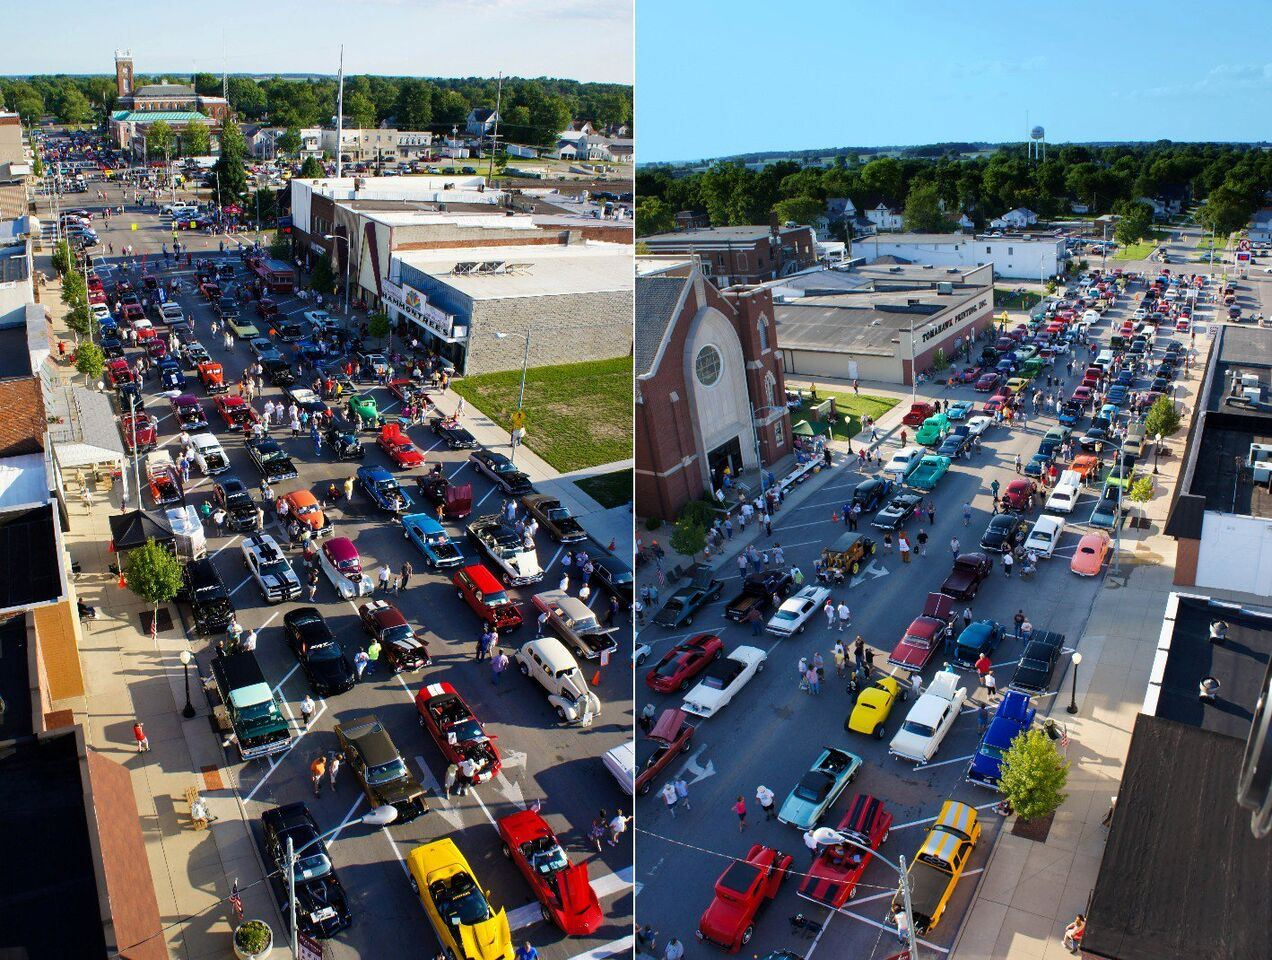 Wauseon Cruise In Opener, Downtown Wauseon, OH, May 7th from 6 PM to 8 PM